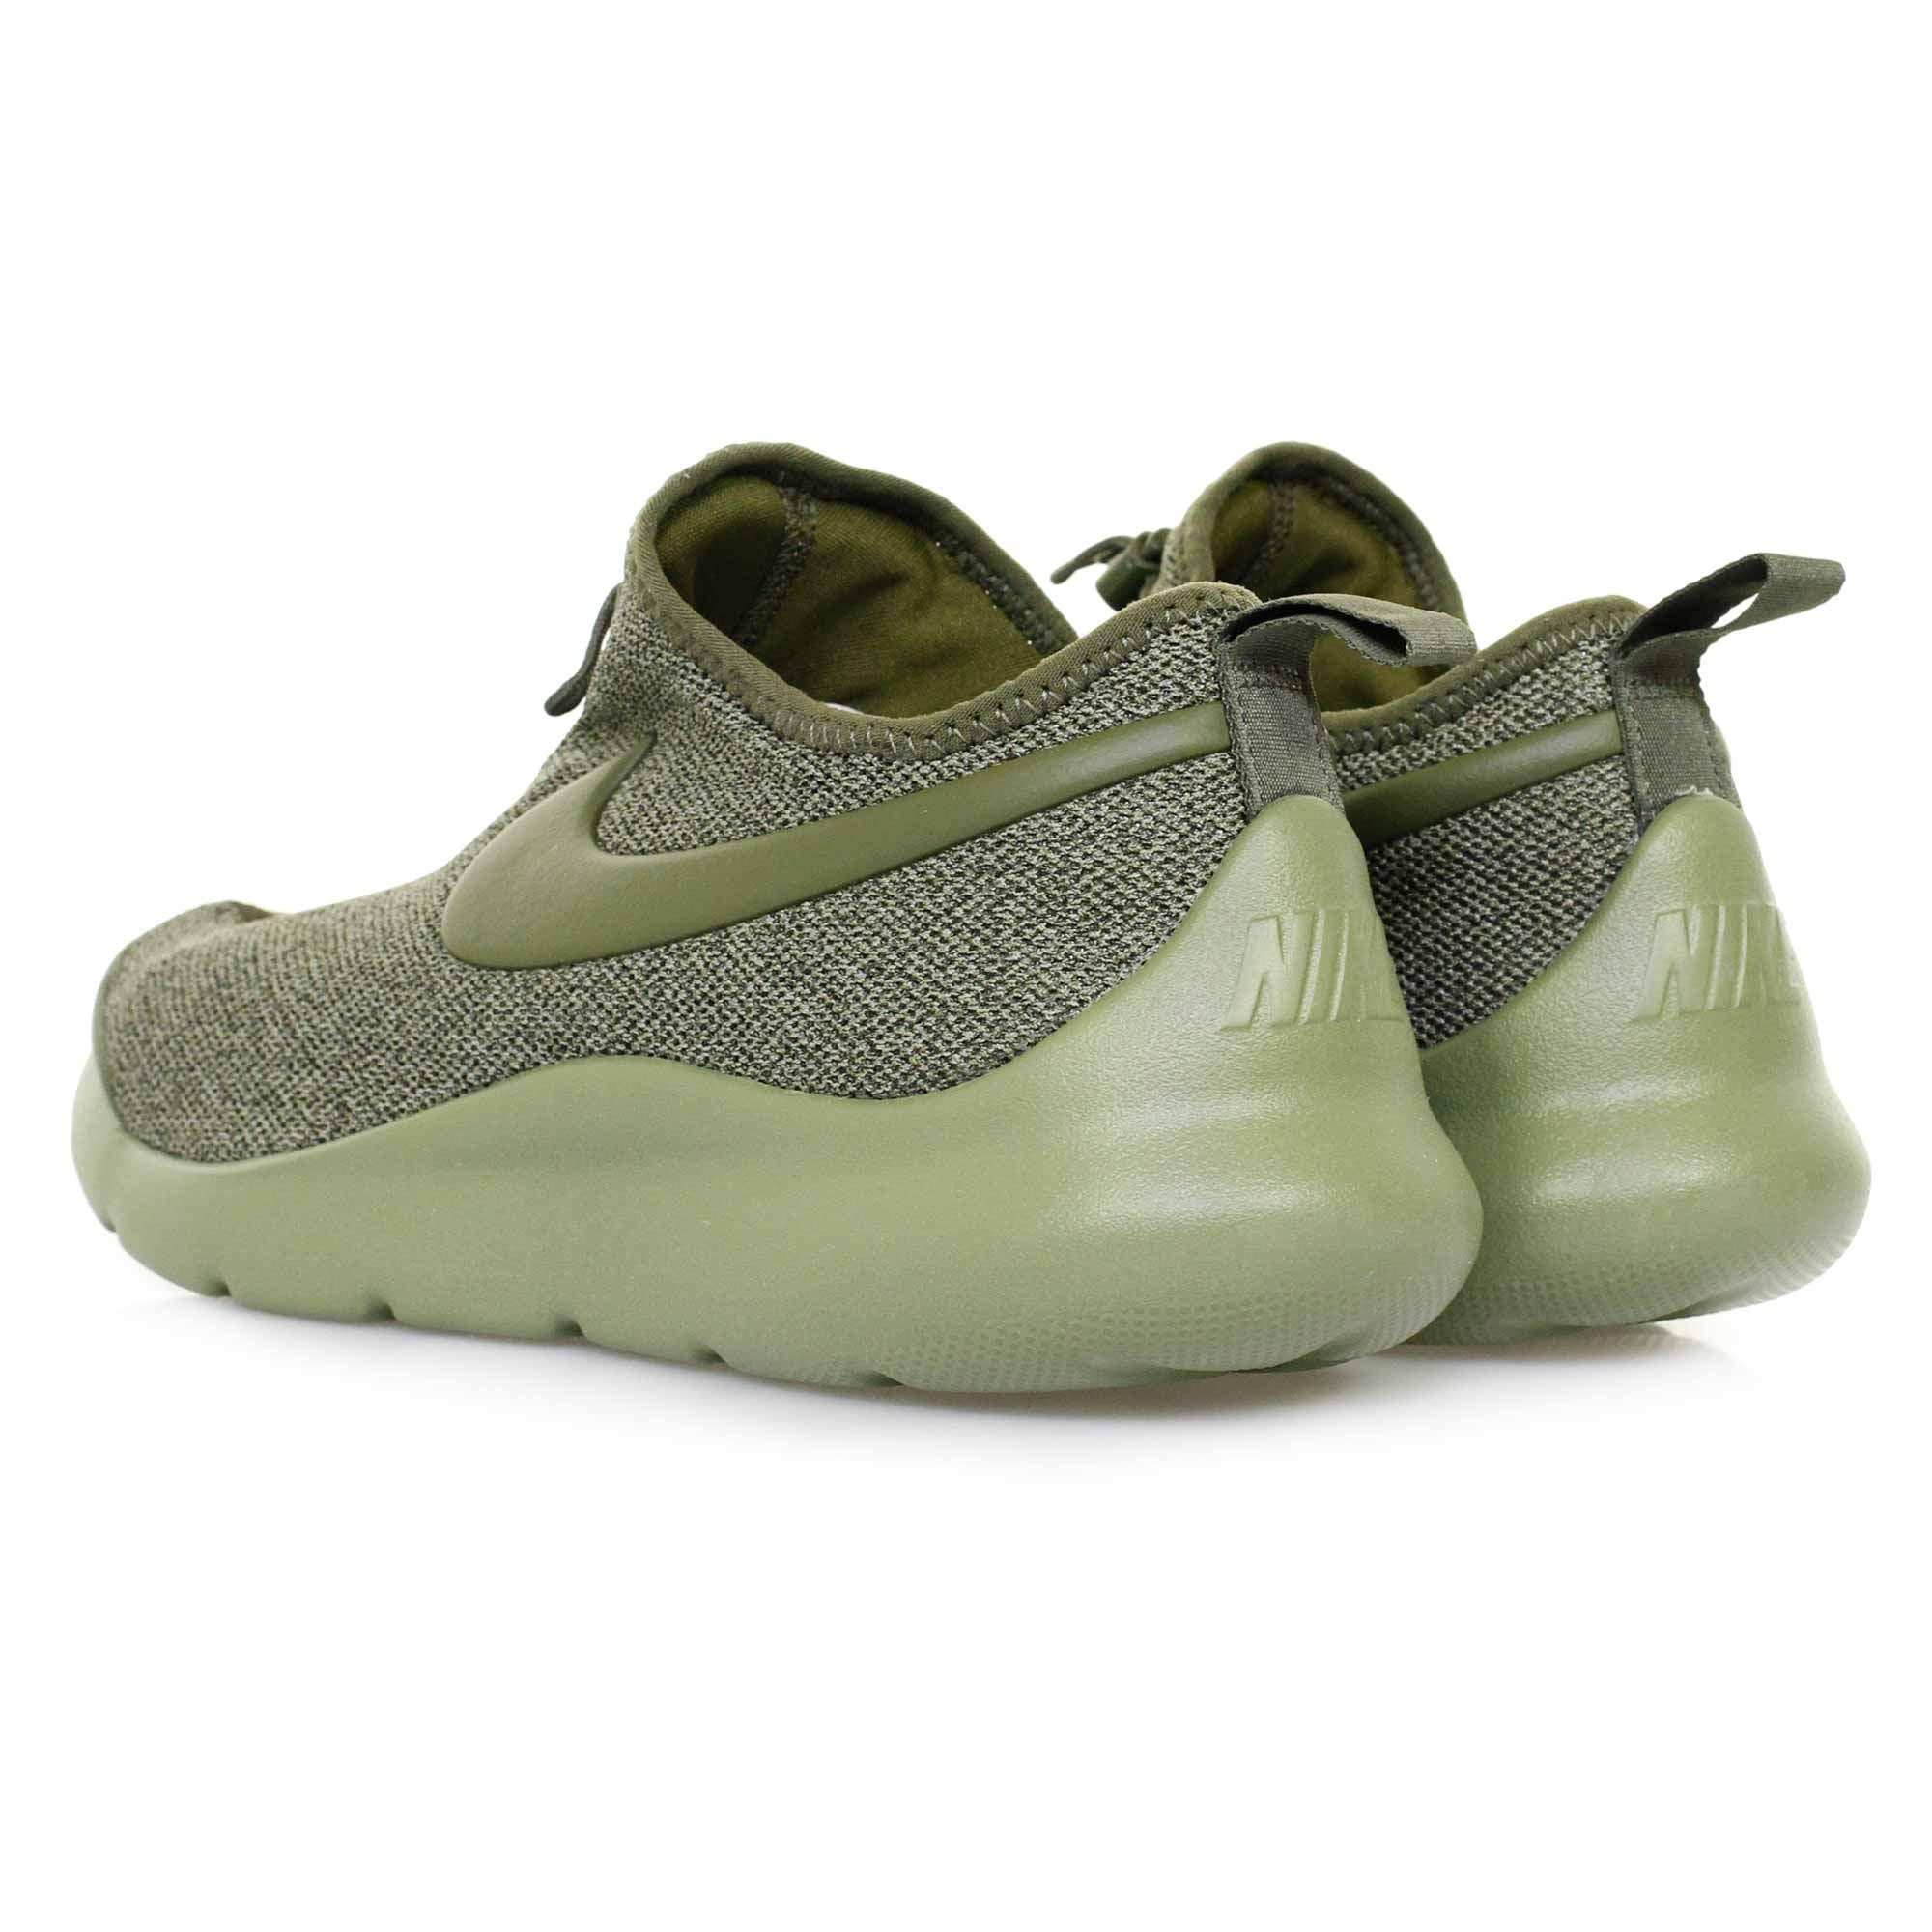 54cb164735f0 ... buy nike aptare se rough green shoe 881988 in green for men lyst 8cd2b  a0645